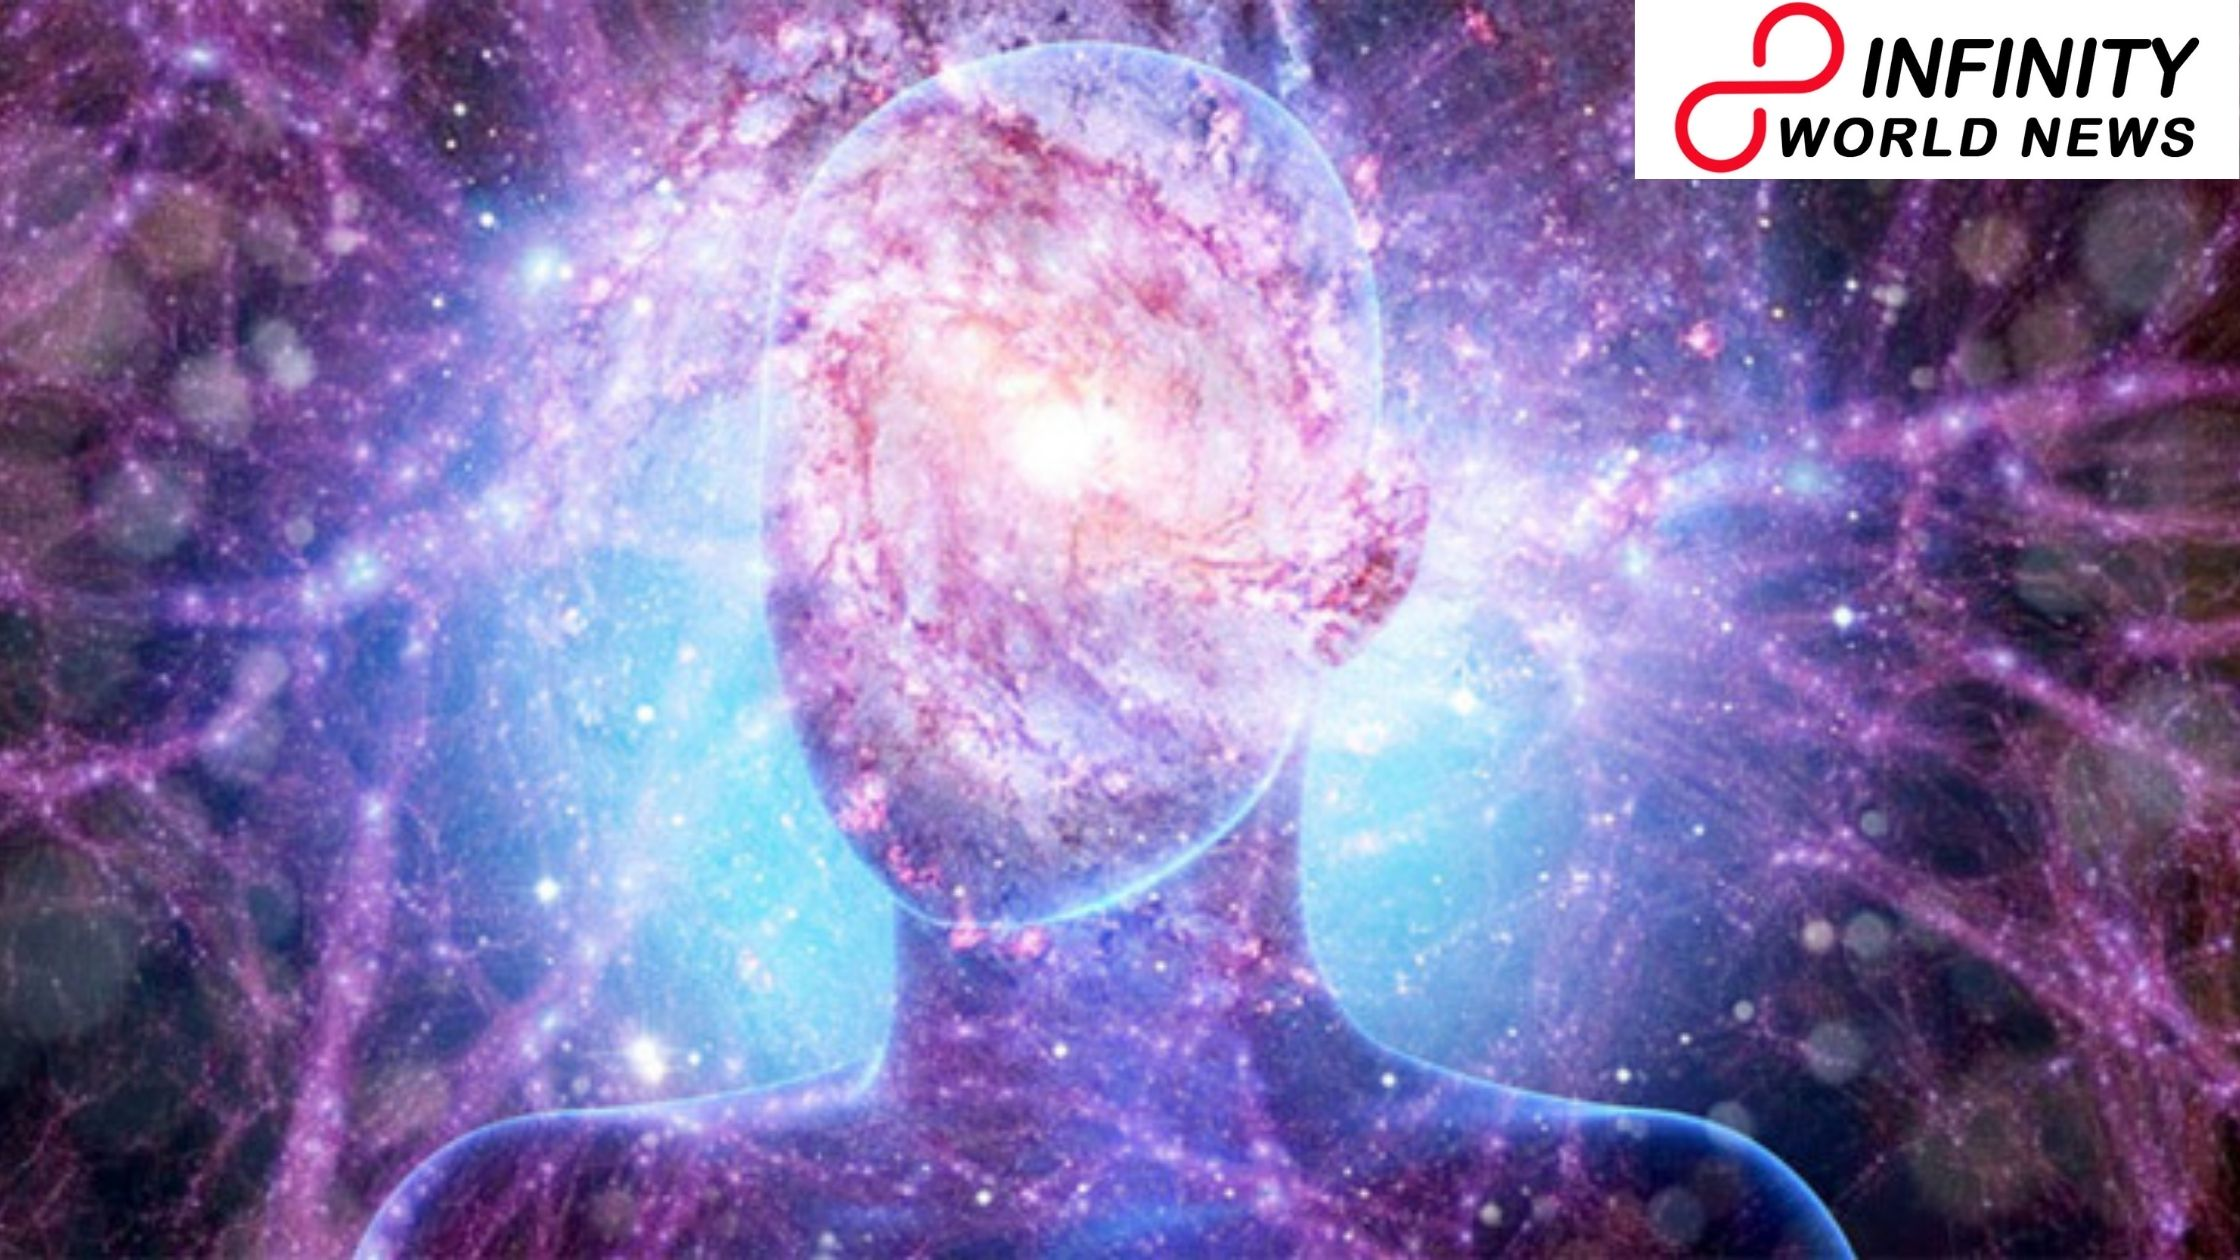 Universe is like a vast human brain